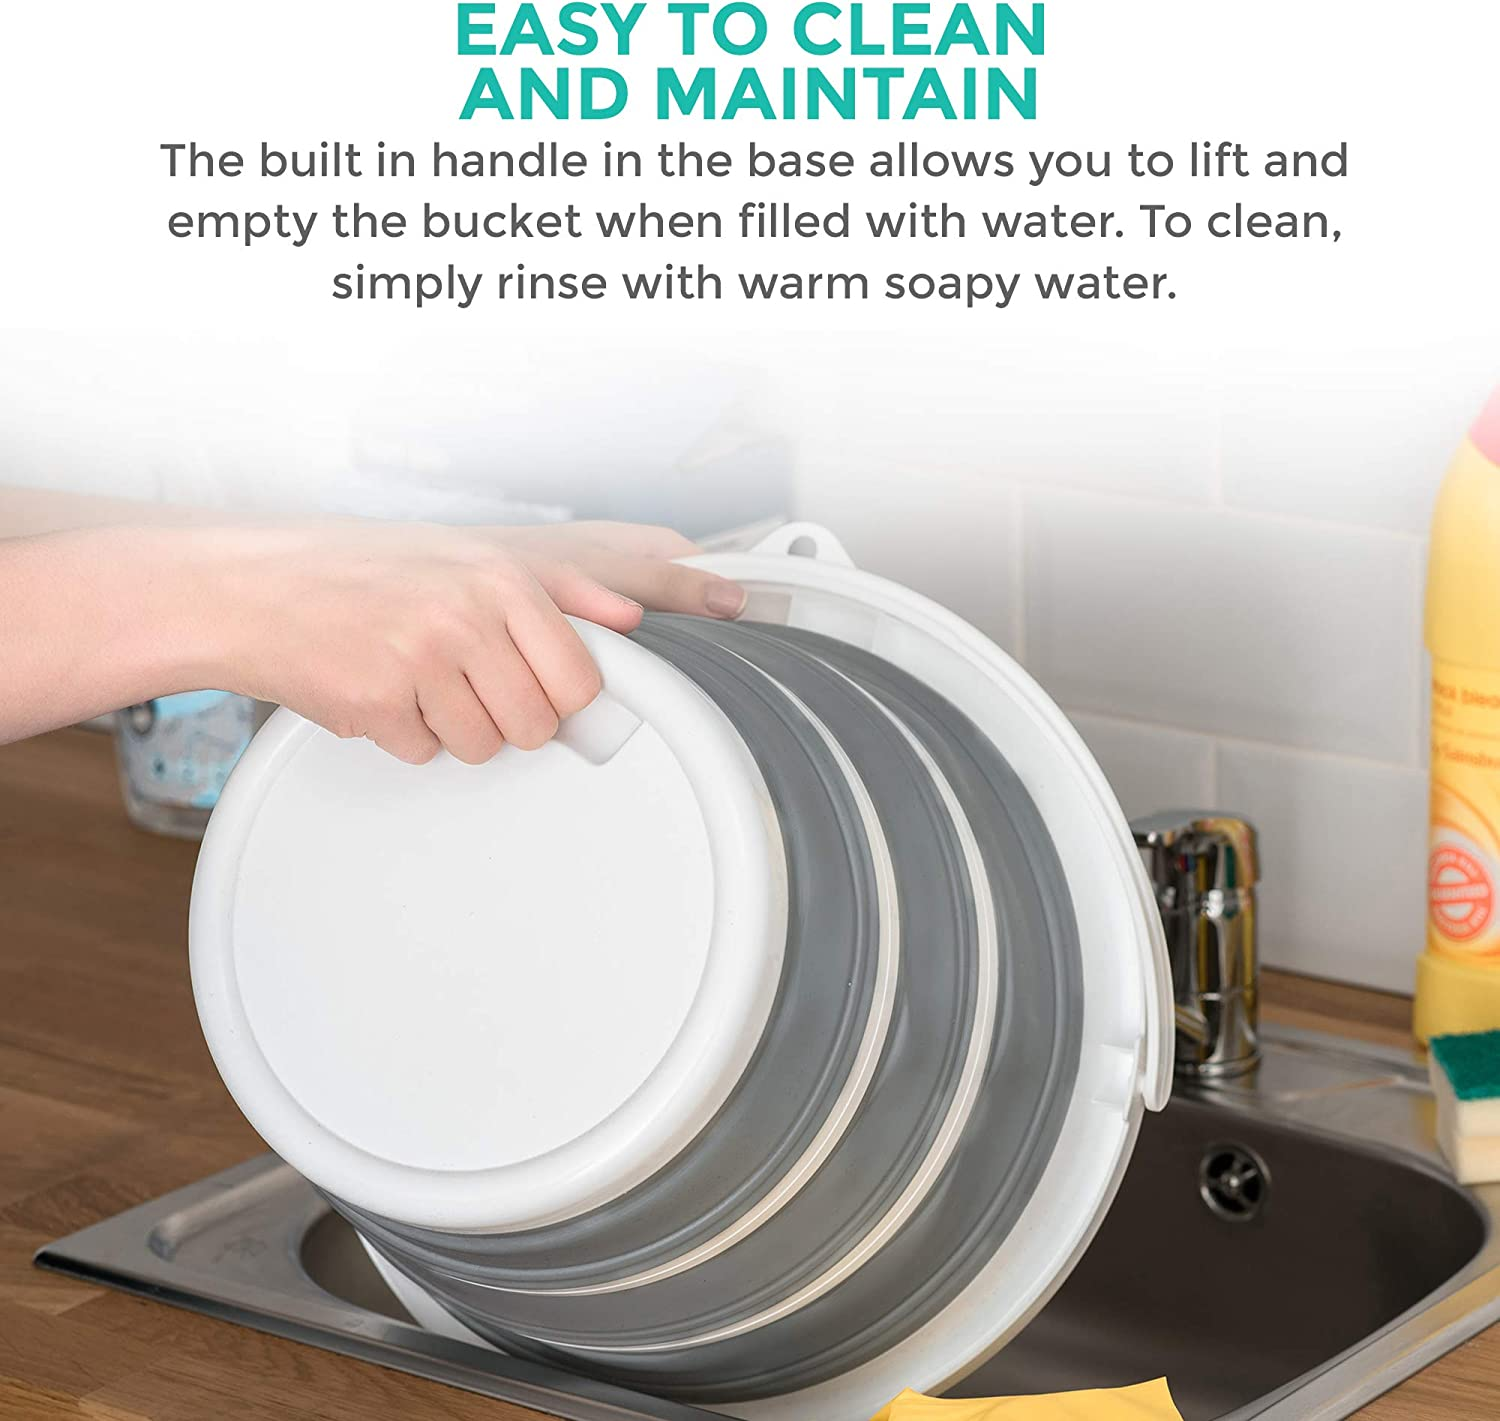 LIVIVO Collapsible Bucket Neat and Tidy Space Saving Solution for your Garage Shed Home Bedroom Large 10L Capacity Sturdy Folding Silicon Water Bucket with Comfortable Grip Handle